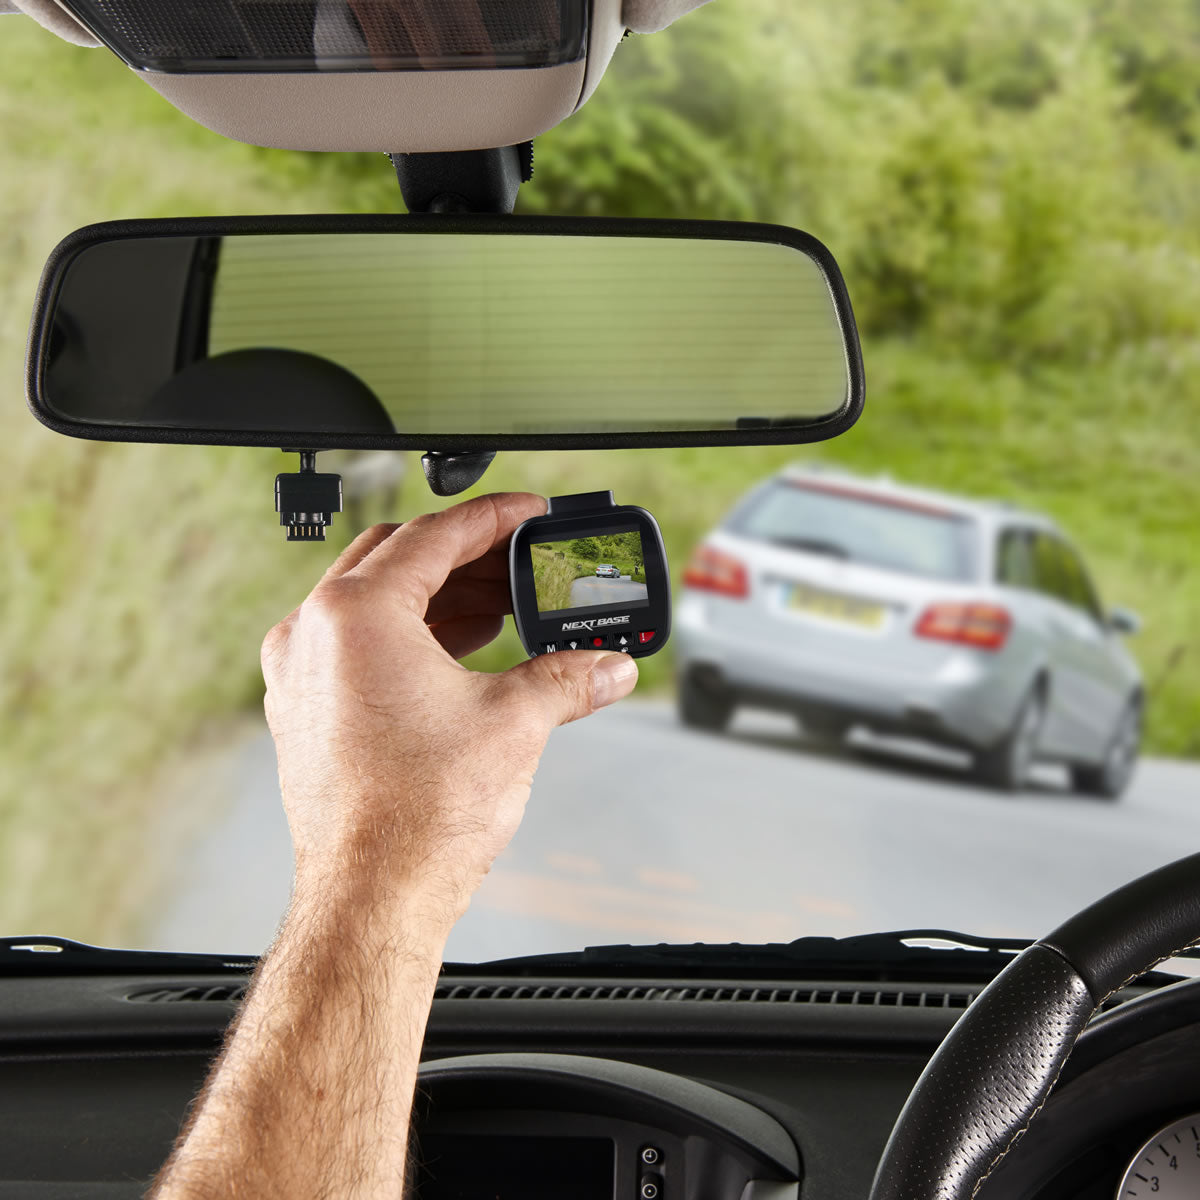 How to use the dash cam